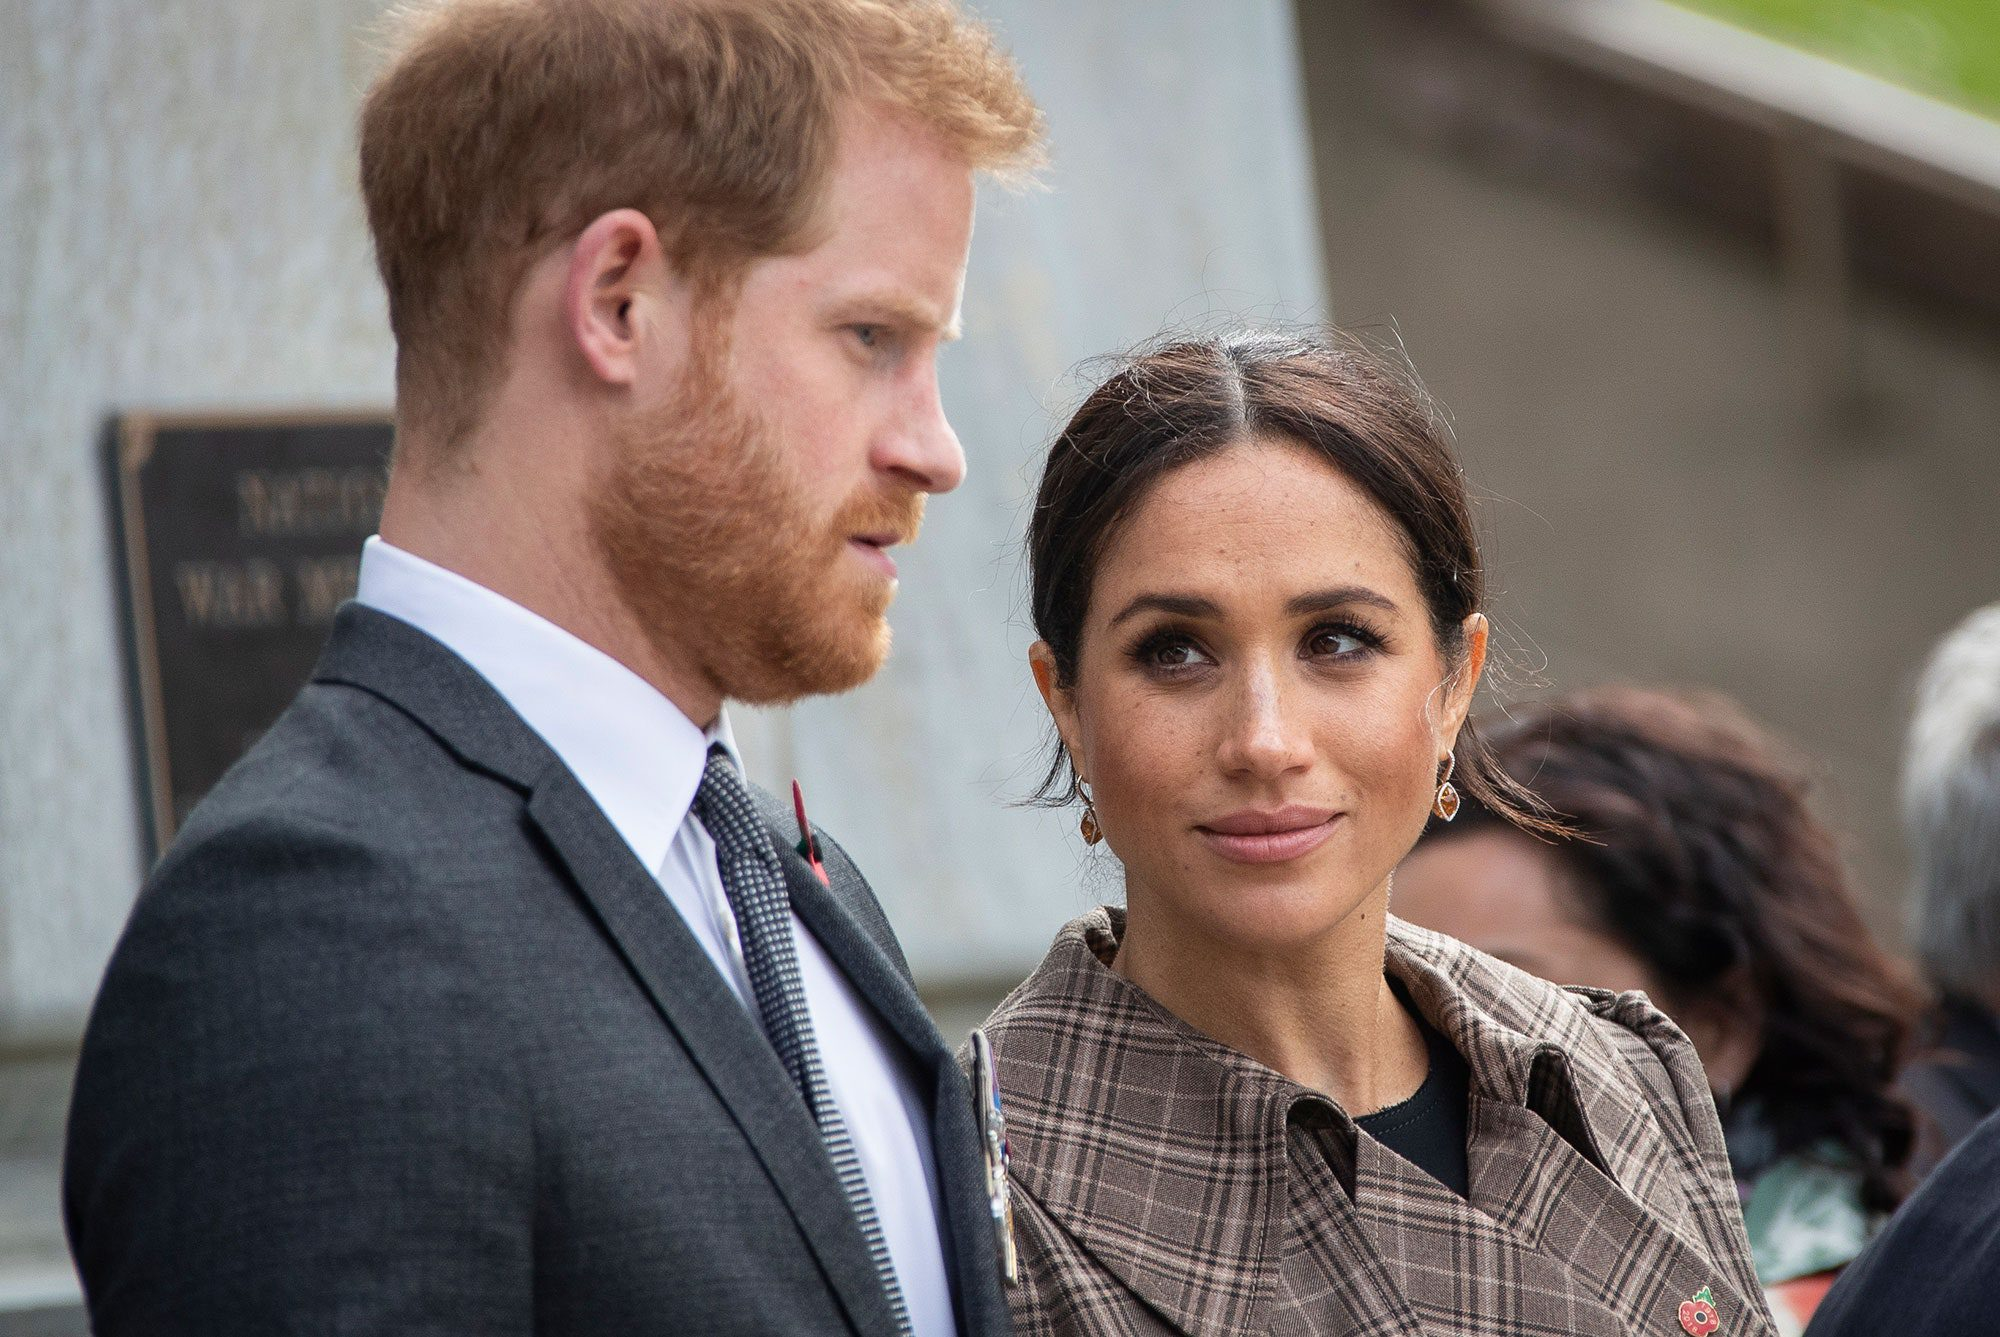 Prince Harry And Meghan Markle : Where Are They Now?